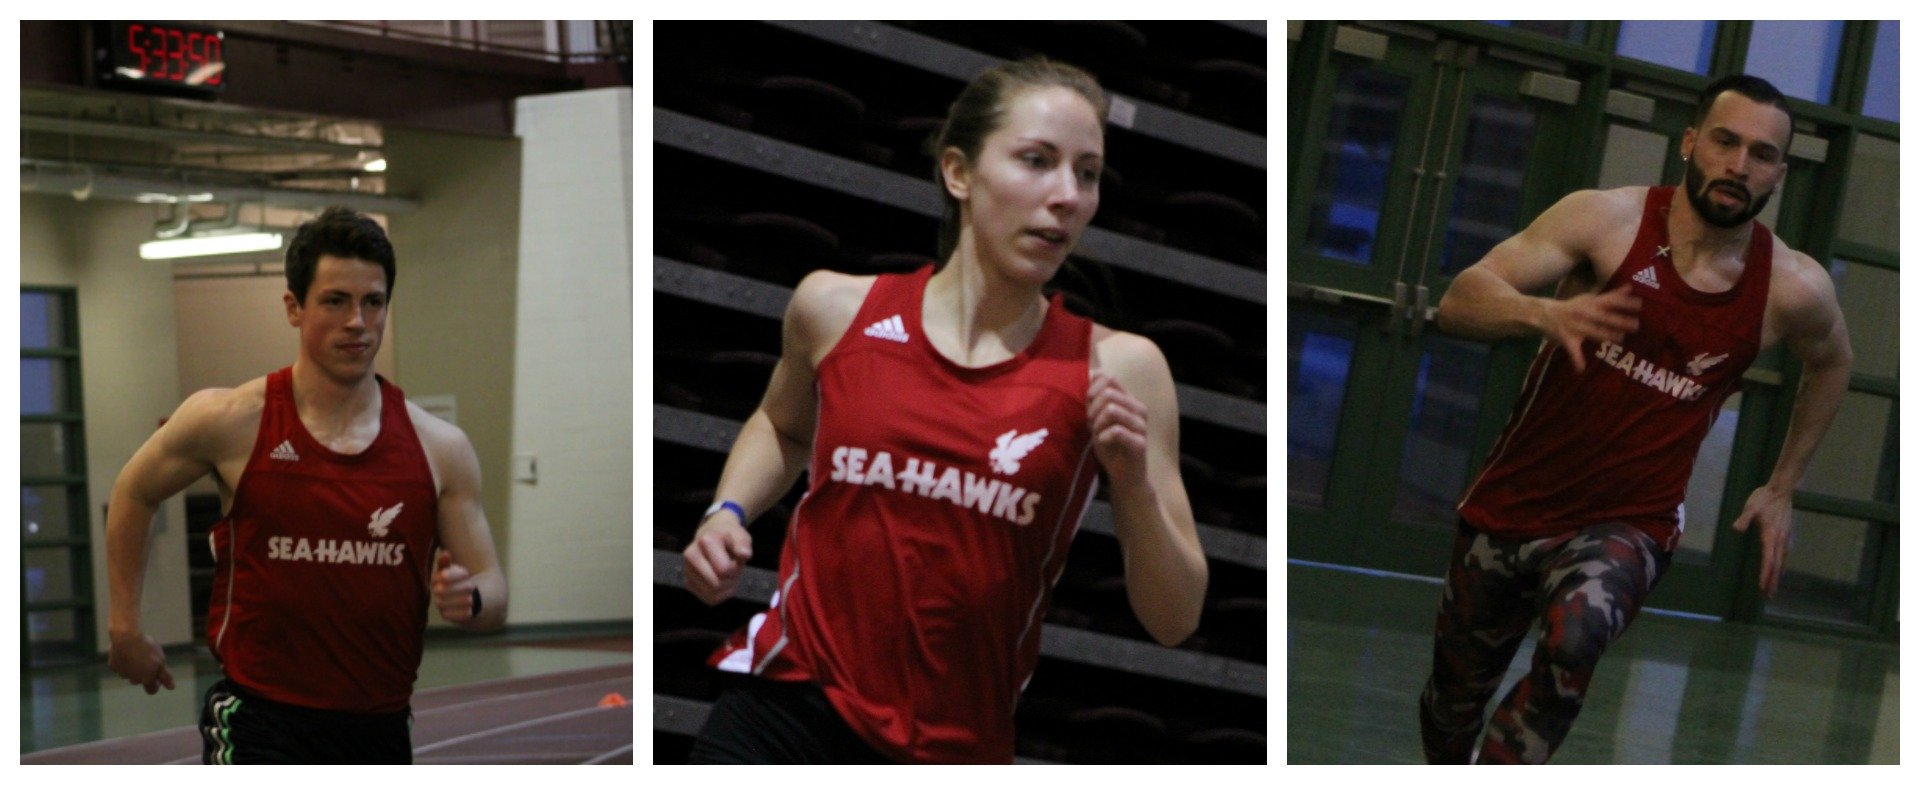 Sea-Hawks are off to the AUS Track & Field Championships